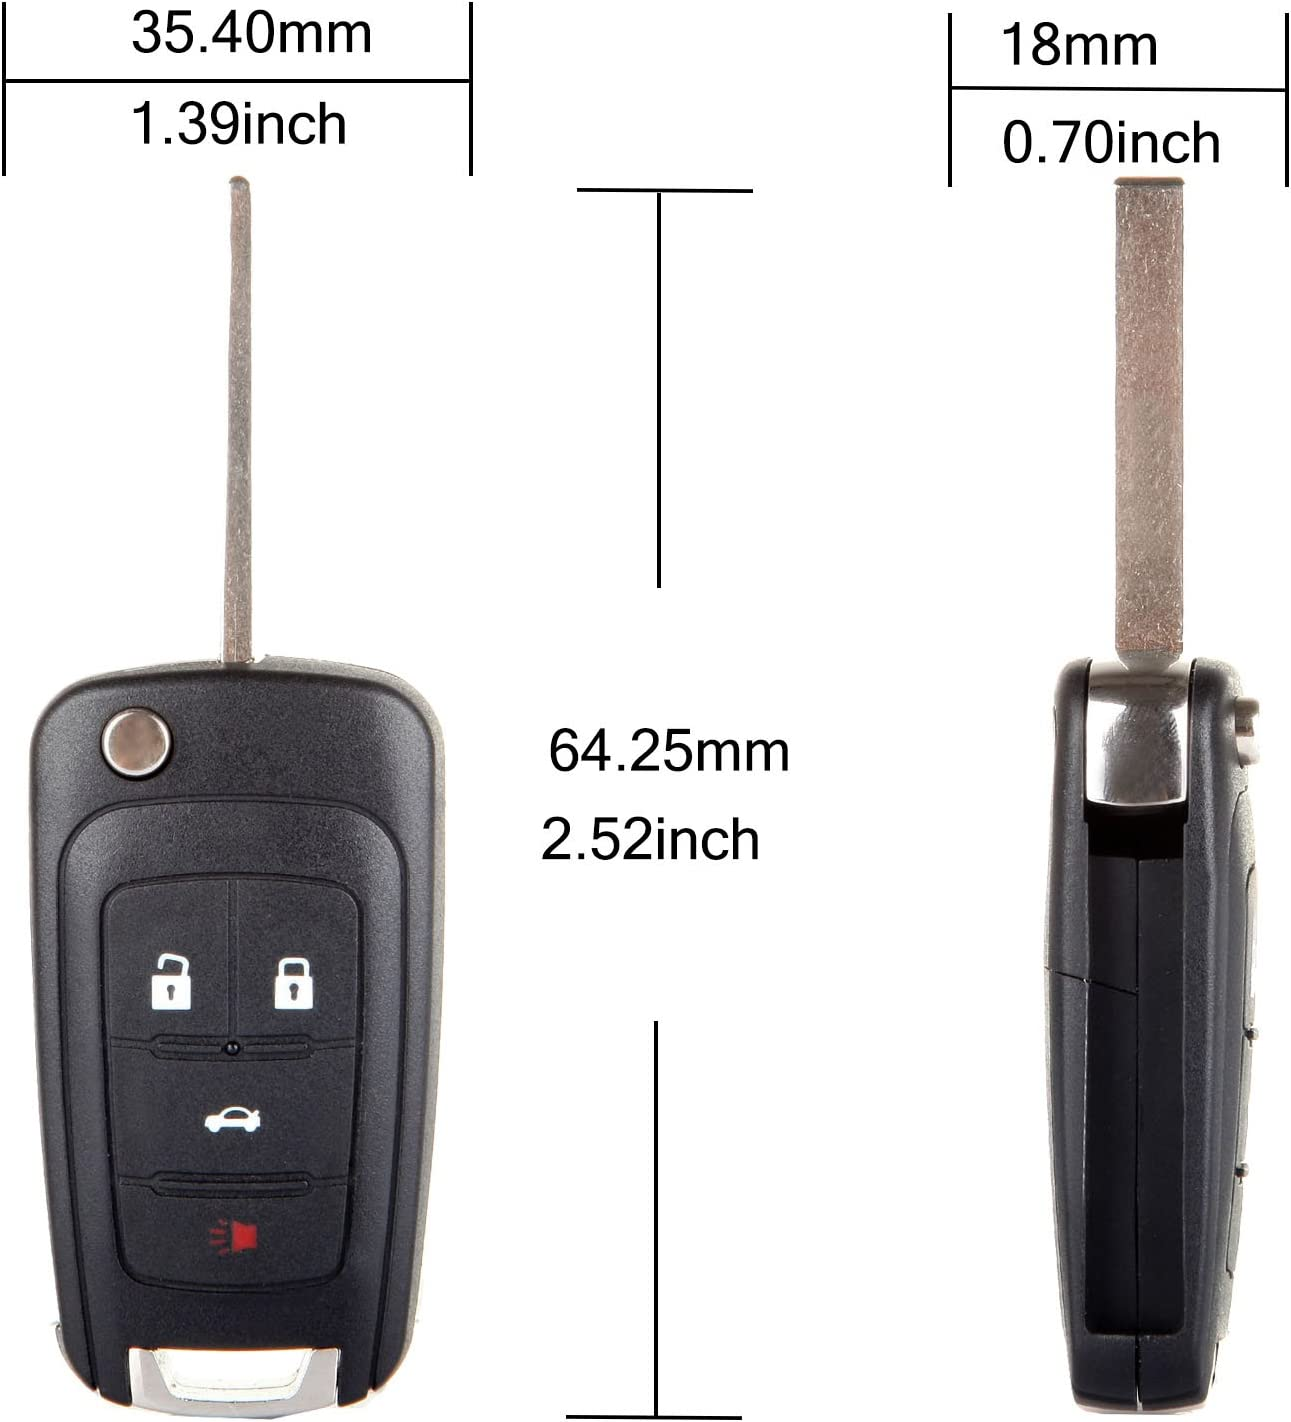 ANPART 2 X Remote Key Fob Uncut Ignition Key Compatible for 10 11 12 13 14 15 16 CHEVROLET Camaro Cruze Equinox Malibu FCC OHT01060512